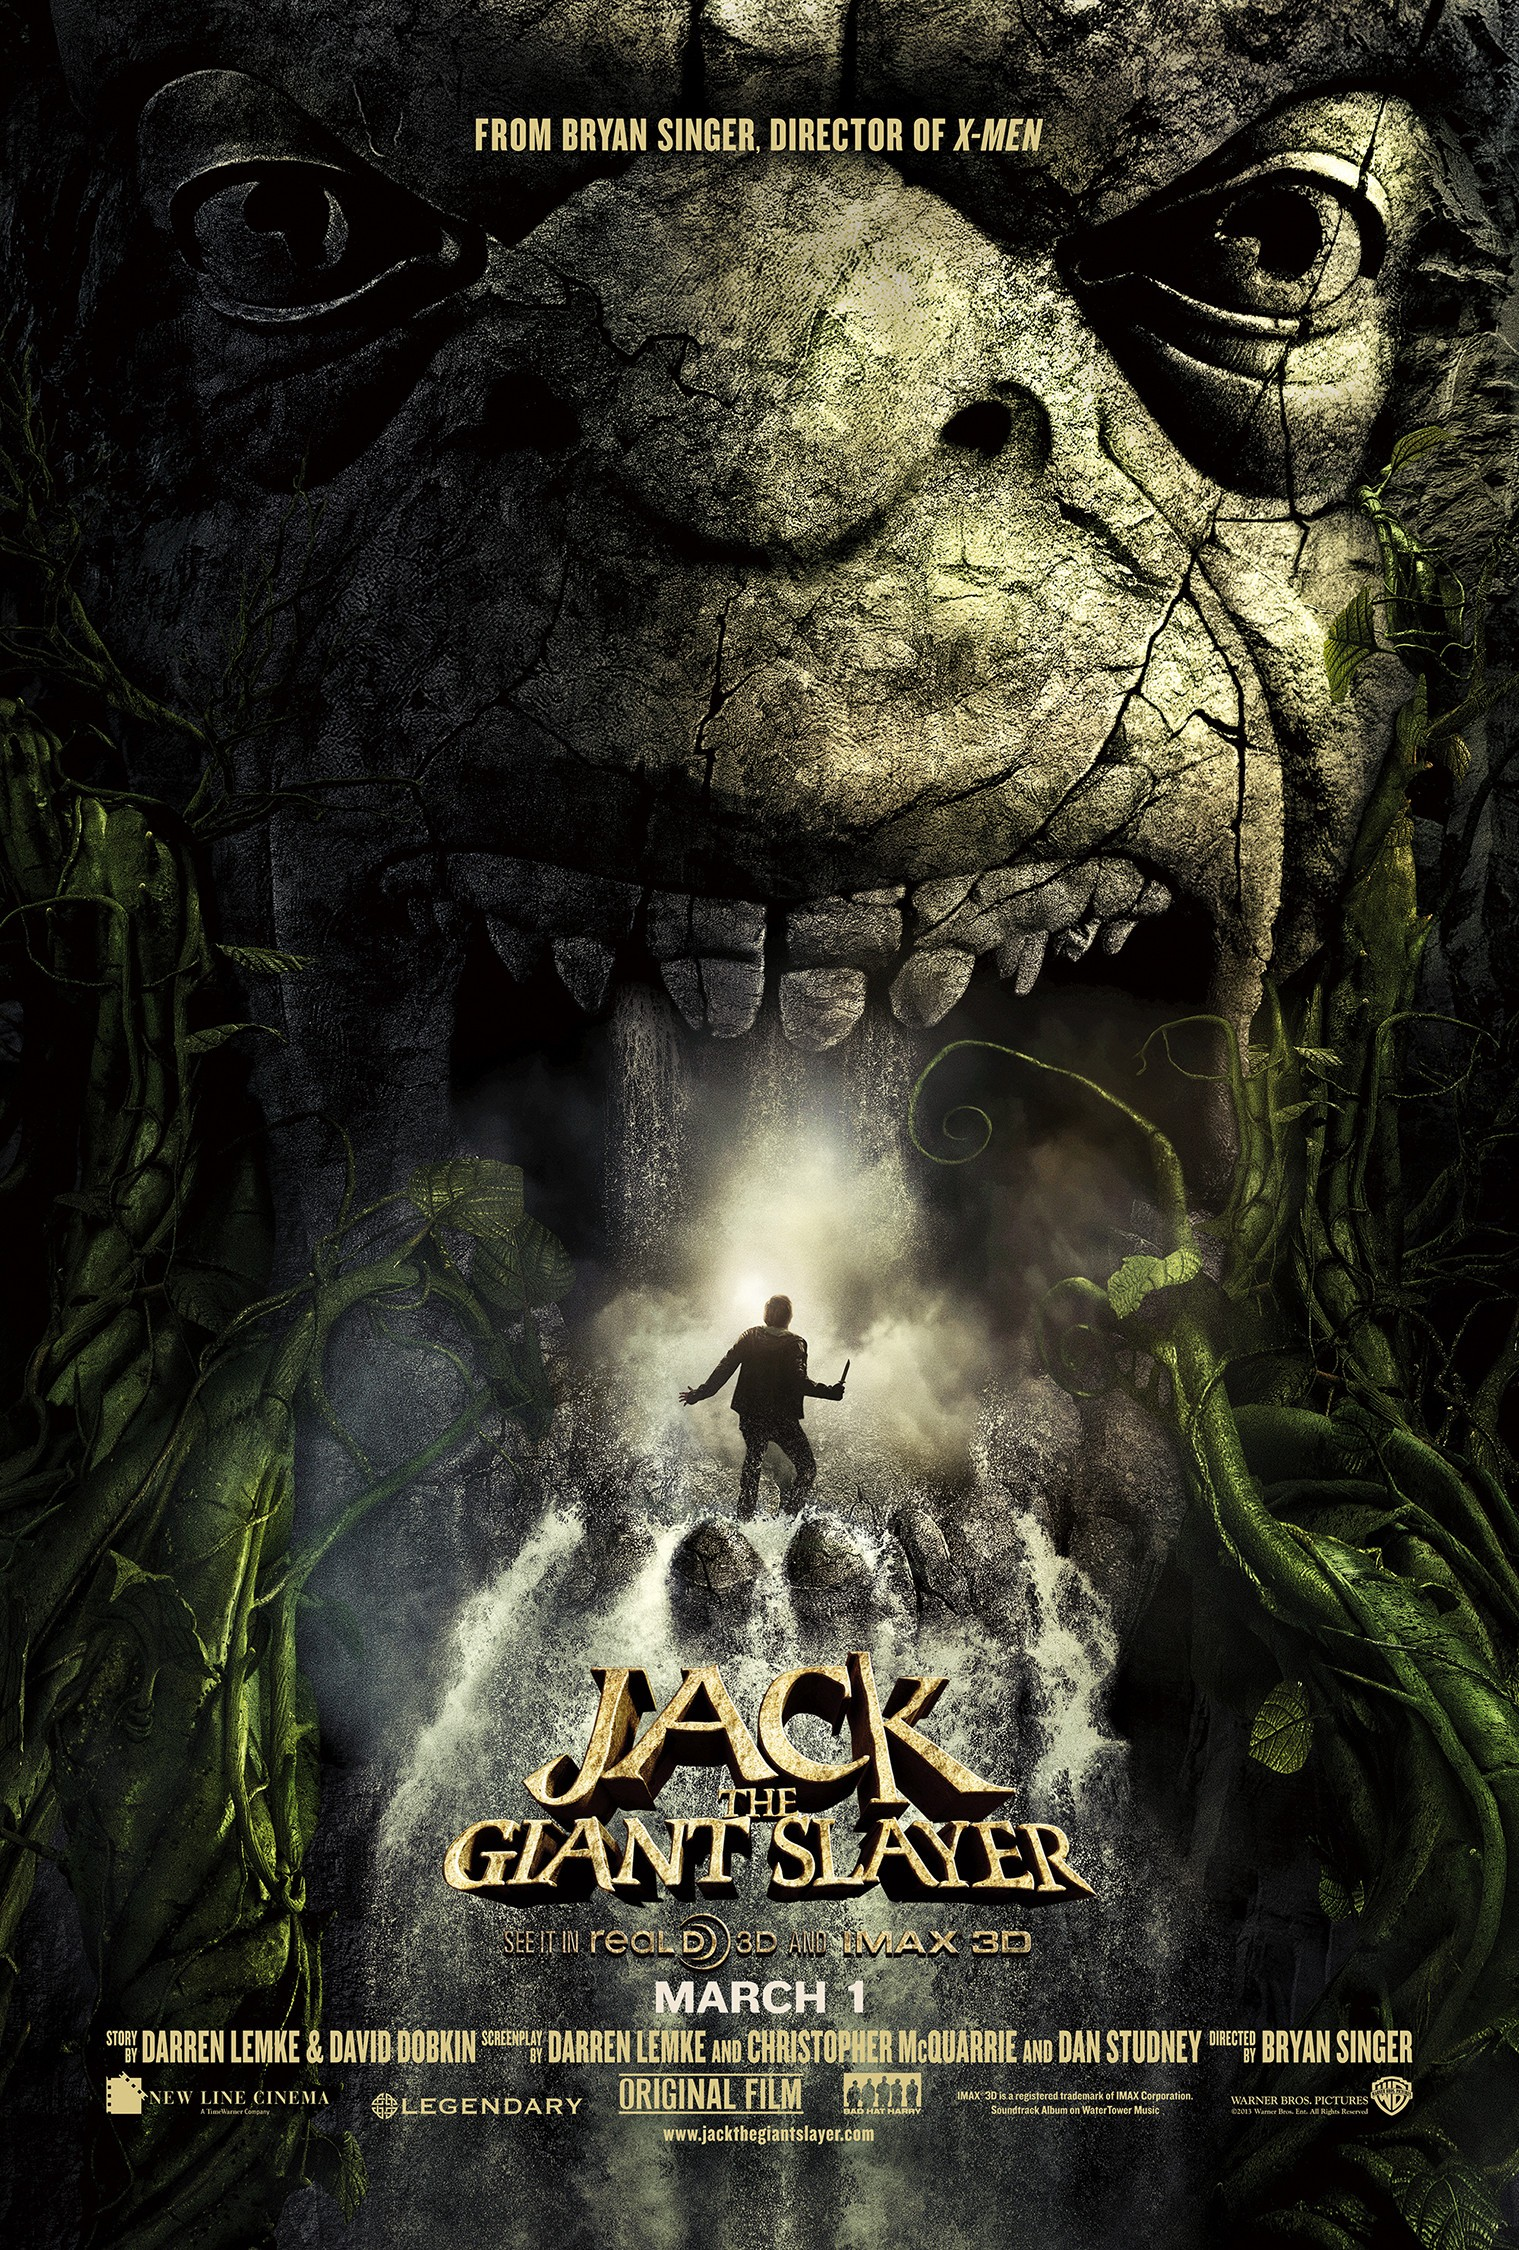 2013-03-01 - Jack the Giant Slayer